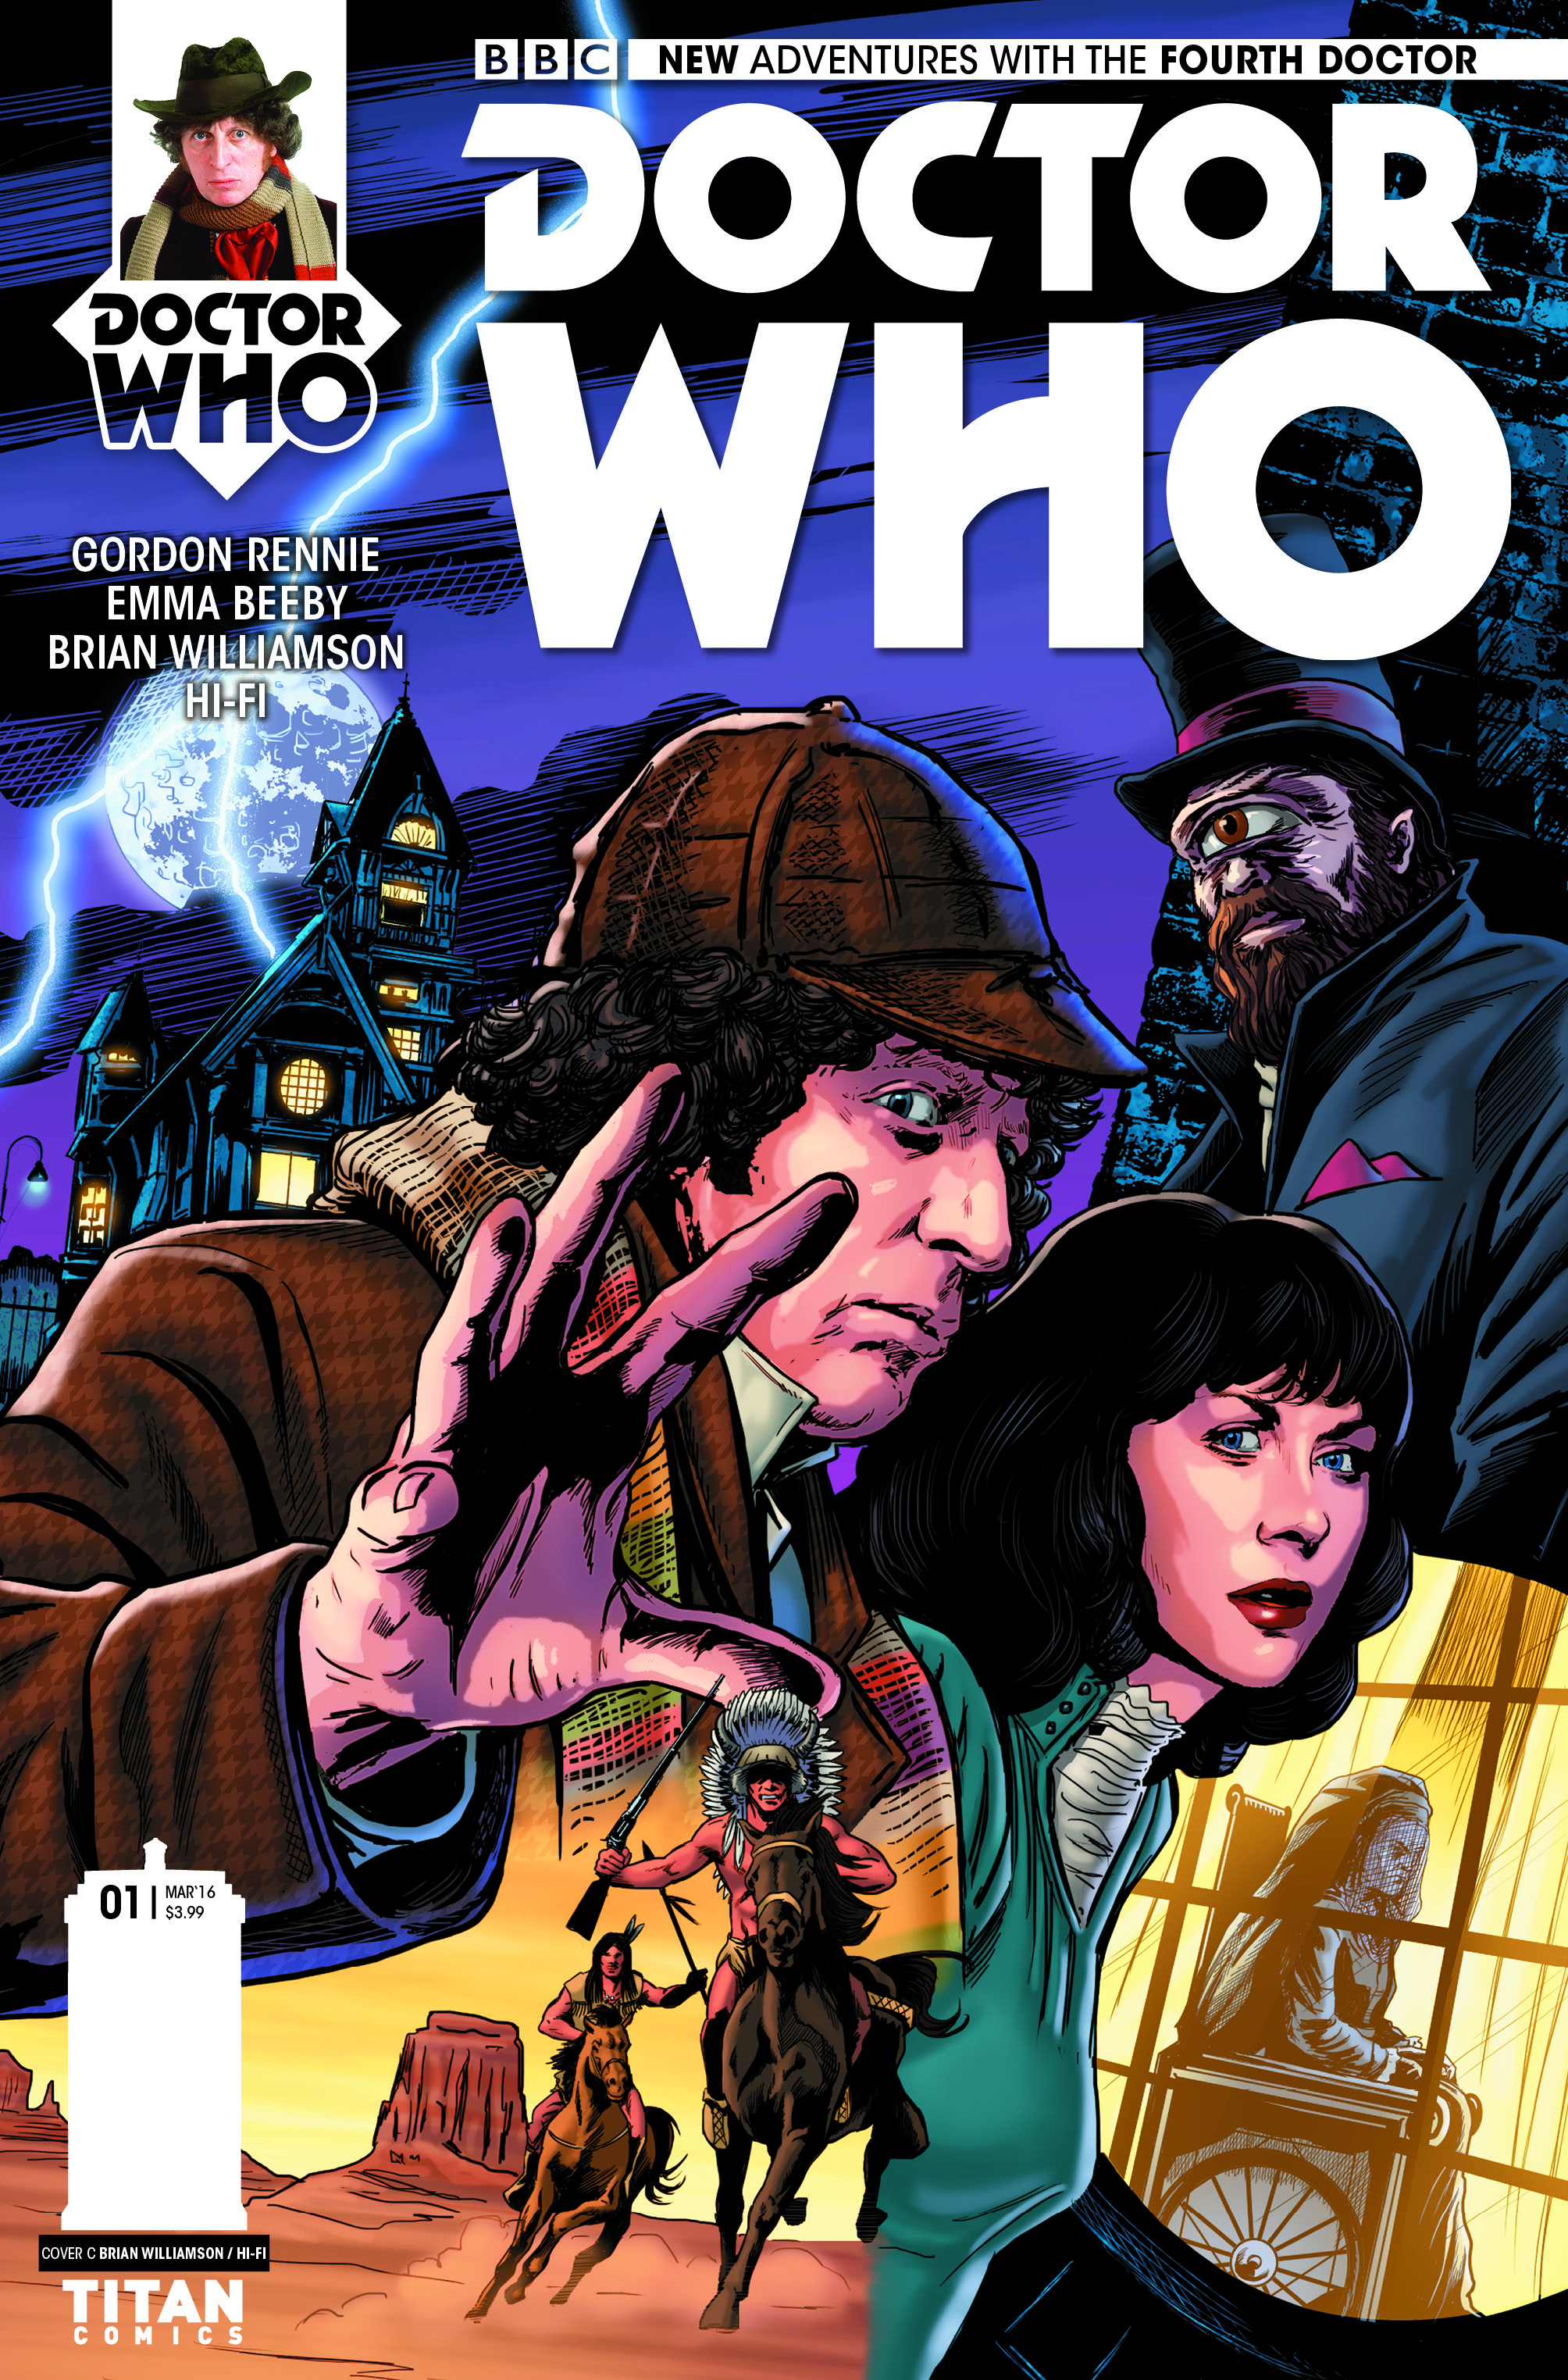 Cover C by Brian Williamson